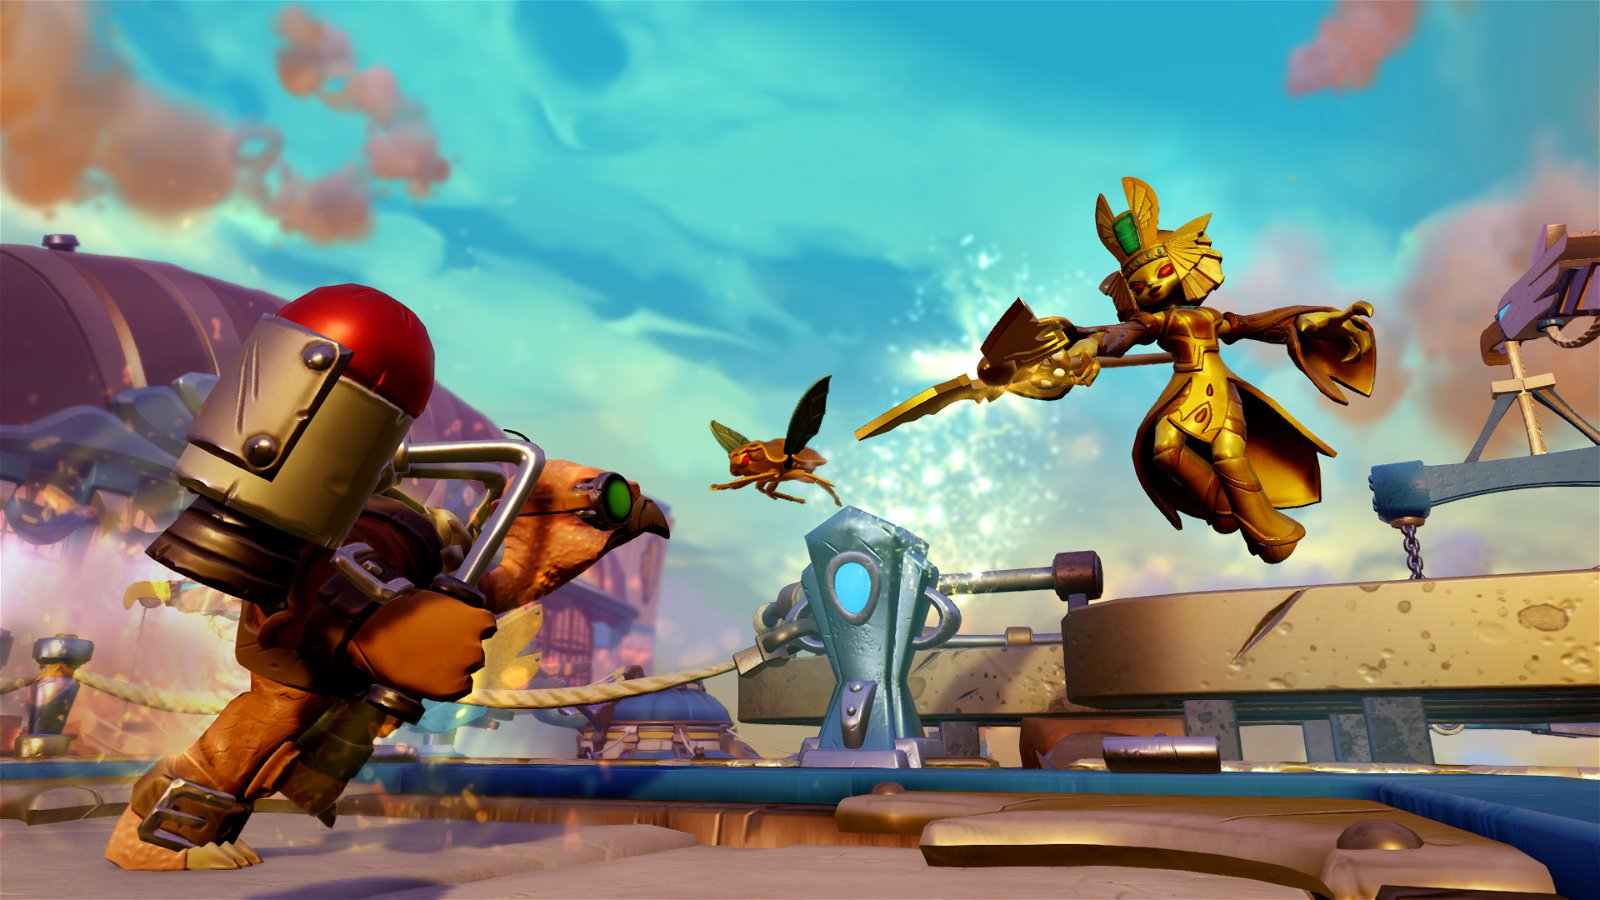 This Year's Skylanders, Imaginators, Announced 1